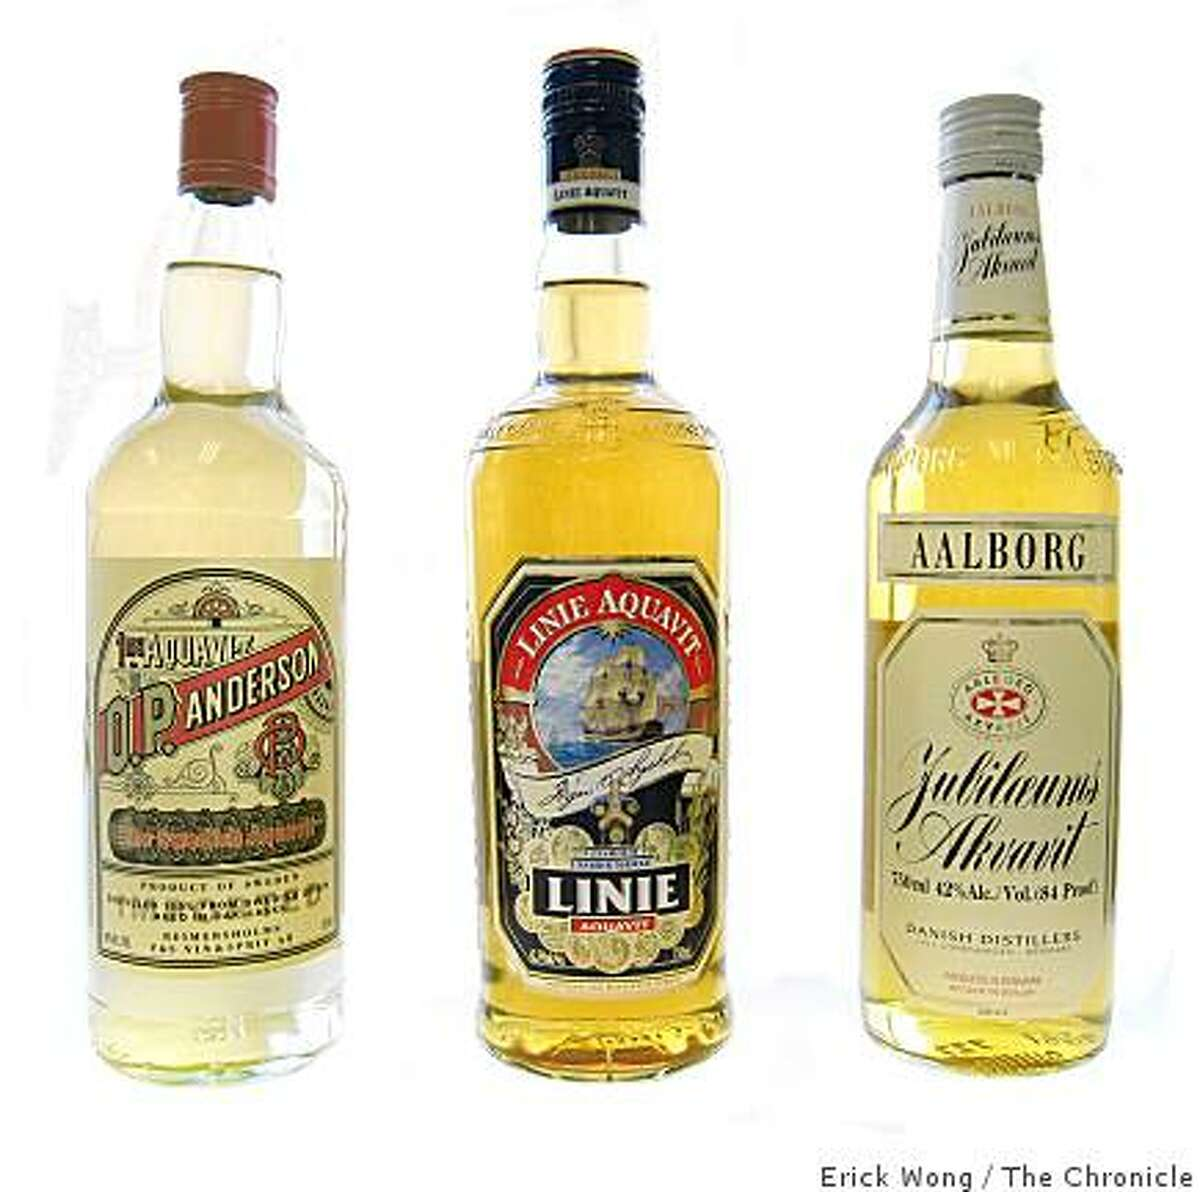 From left, aquavits from Scandinavia: O.P. Anderson from Sweden; Linie Aquavit from Norway; Jubiloeums Akvavit from Denmark.